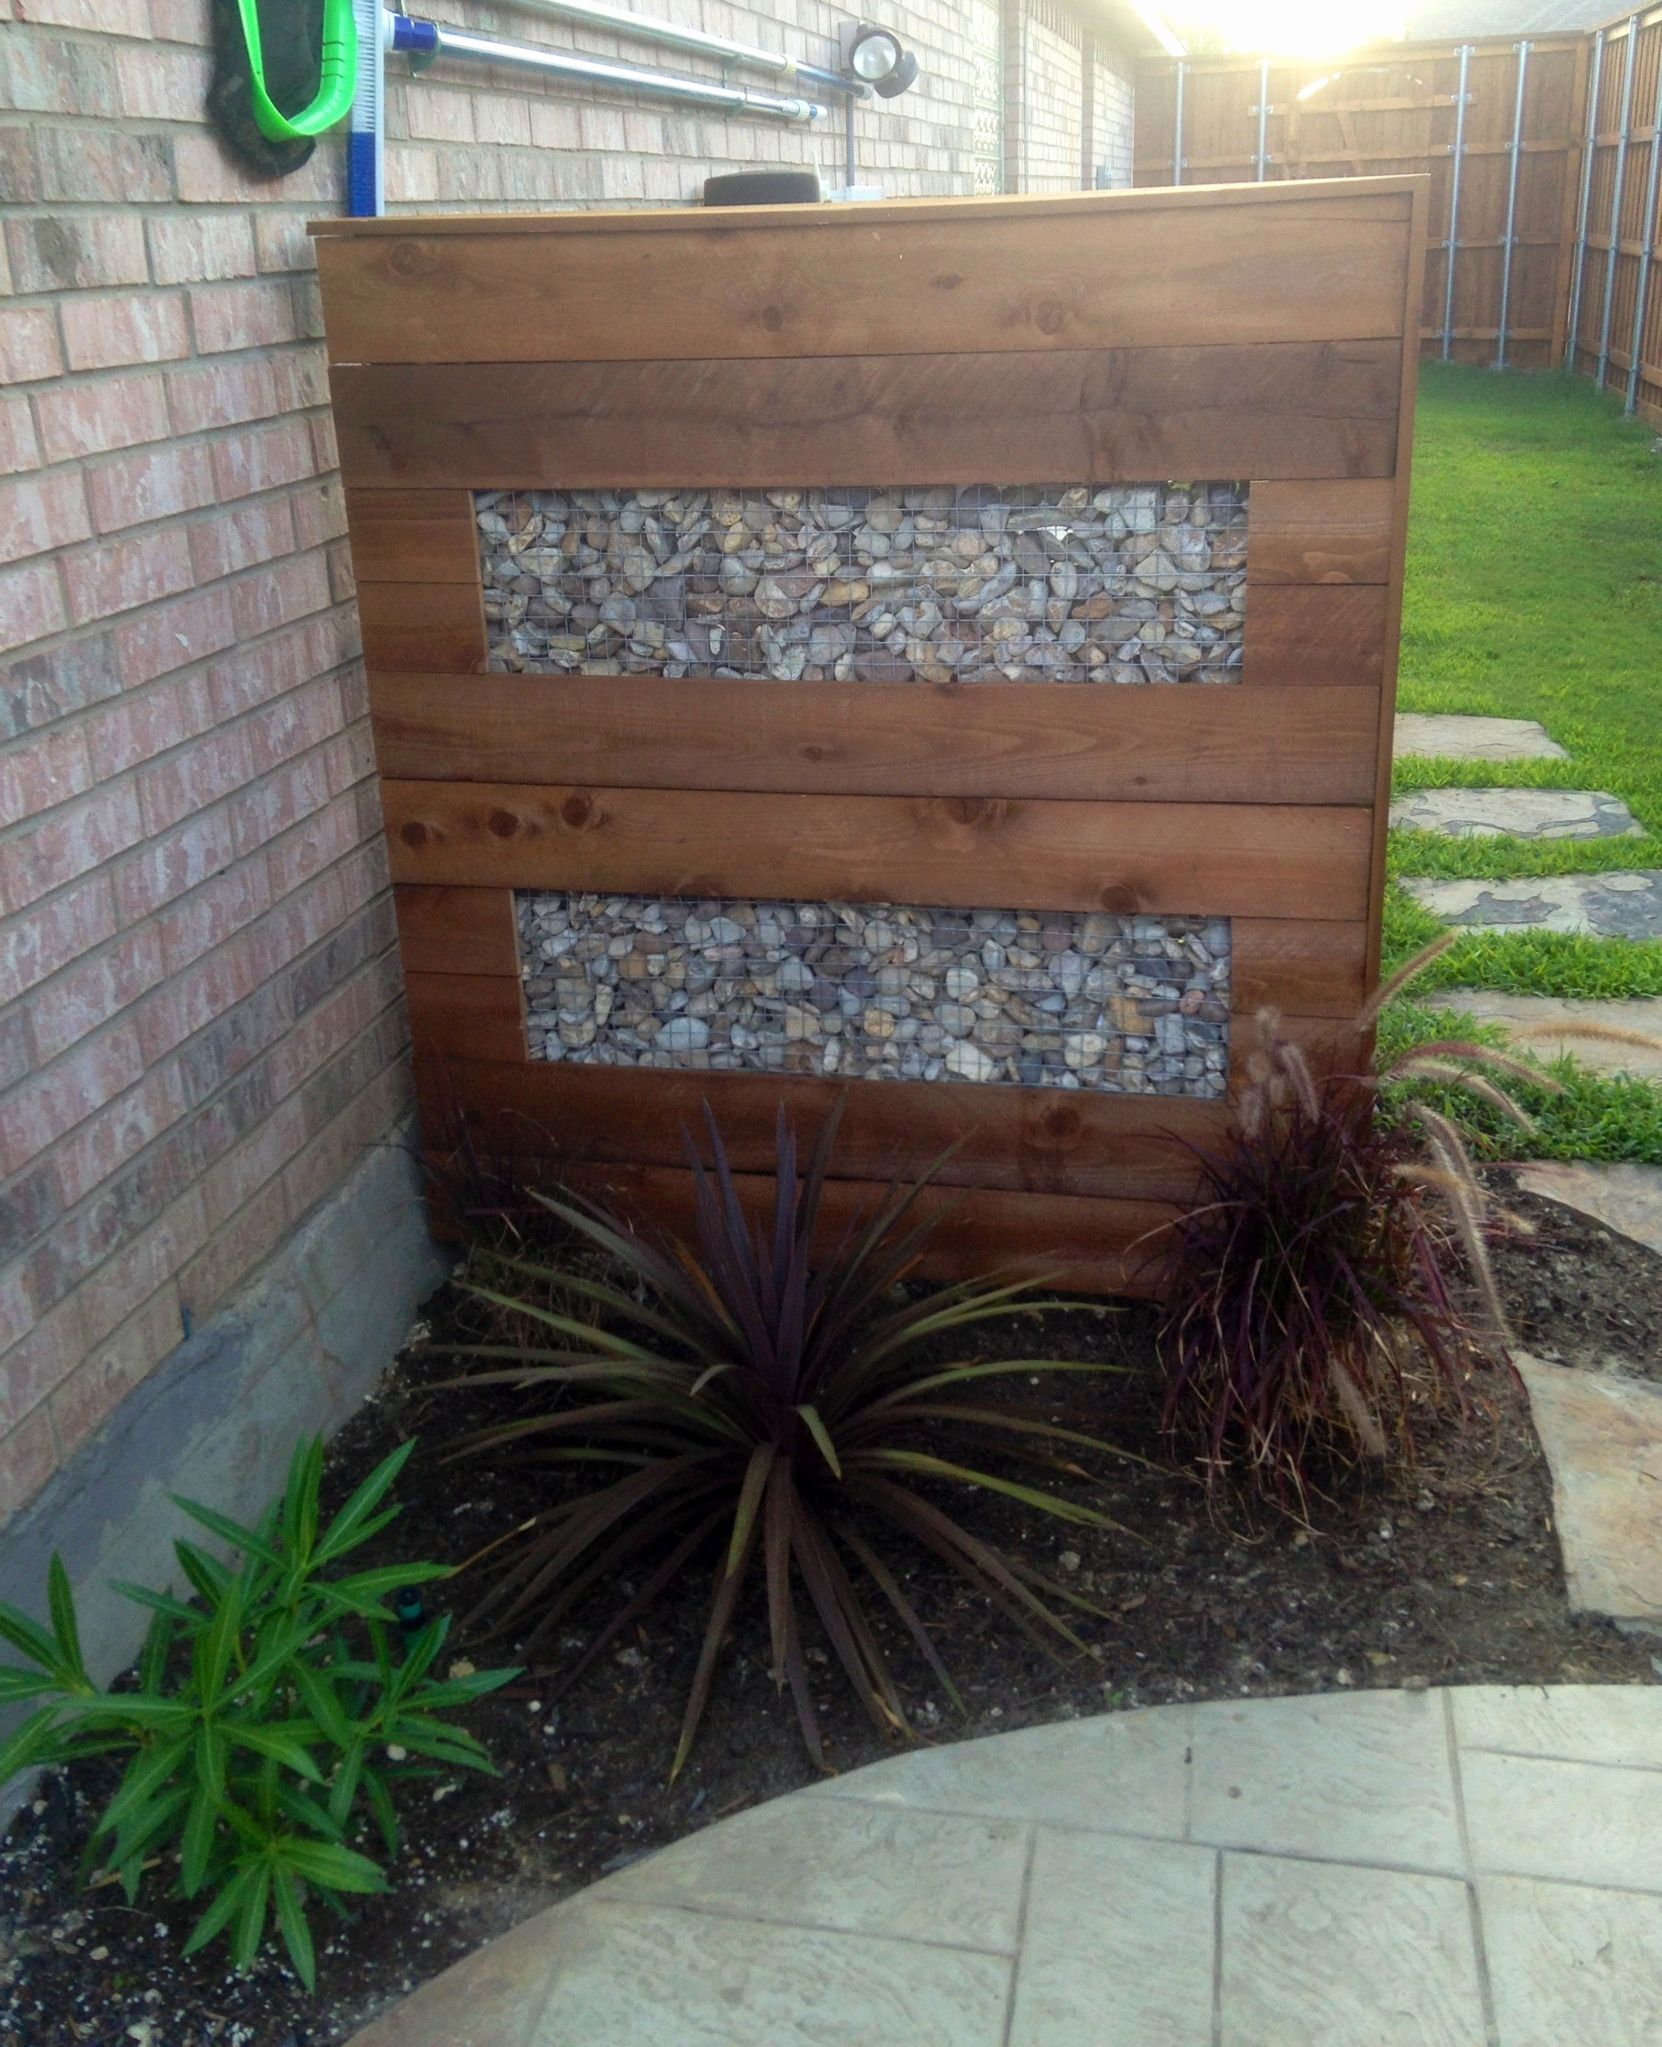 Landscape Ideas to Hide Utility Boxes Privacy screen